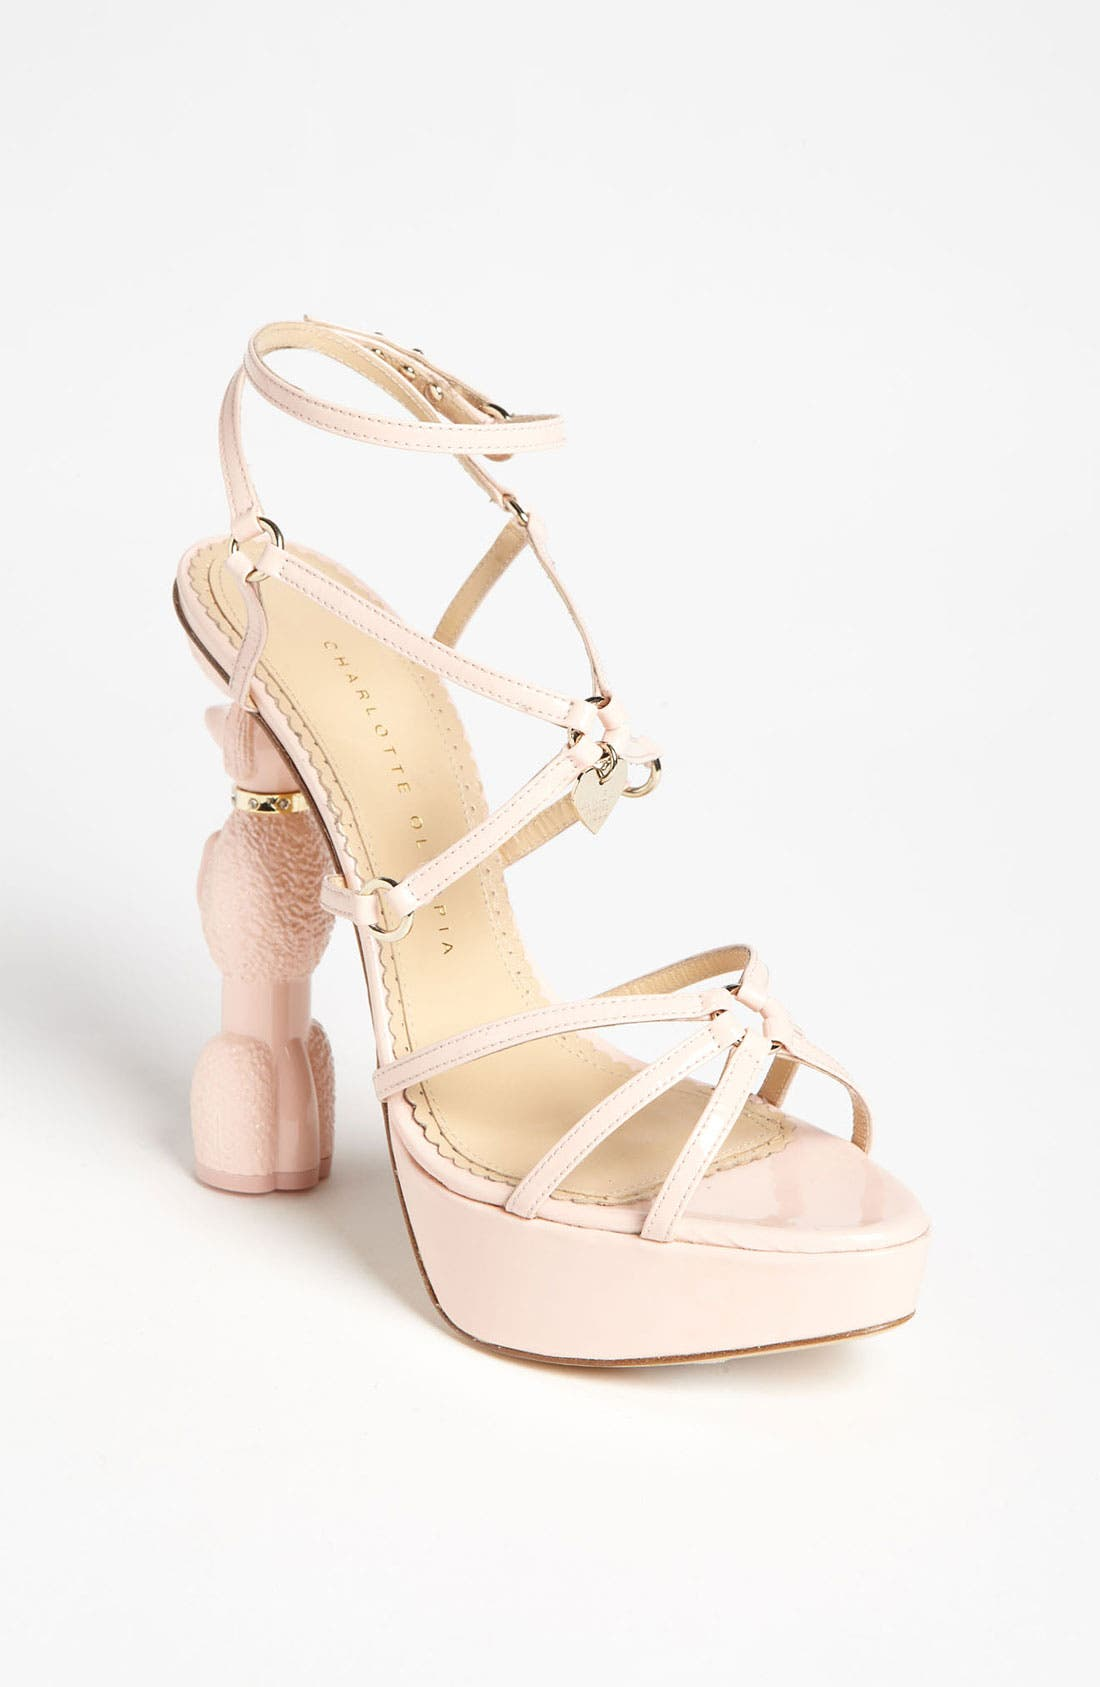 Alternate Image 1 Selected - Charlotte Olympia 'Cherie' Sandal